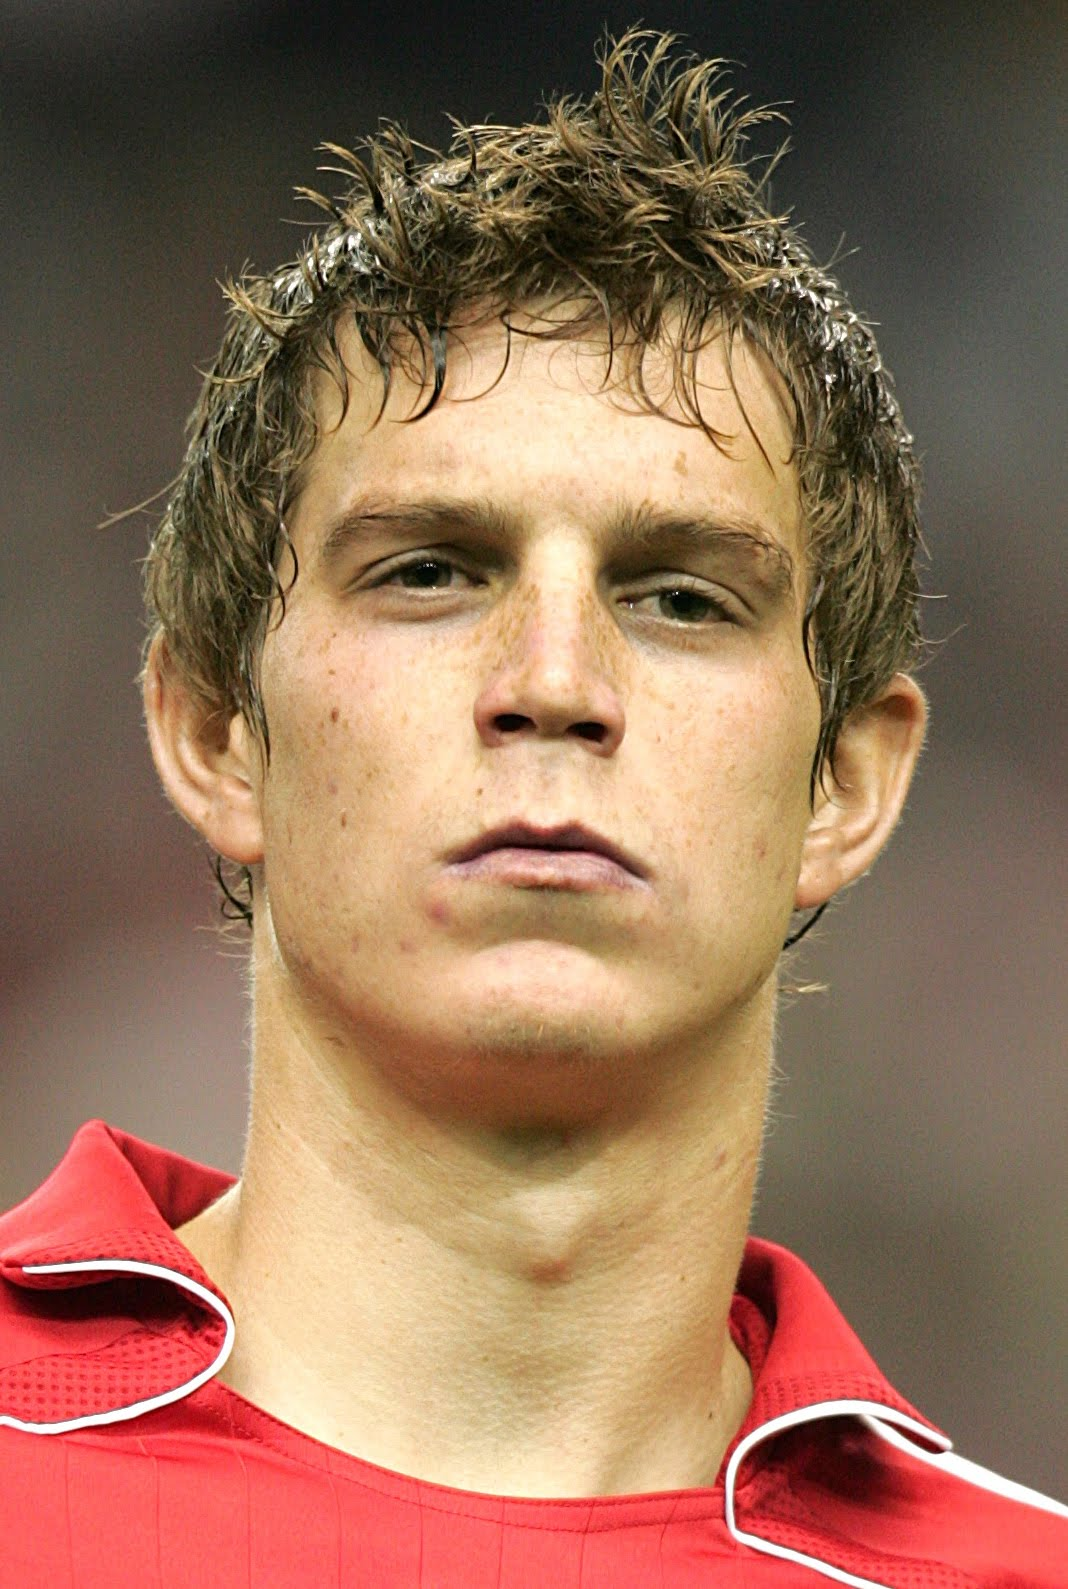 The Best Footballers Daniel Agger Plays For The Denmark